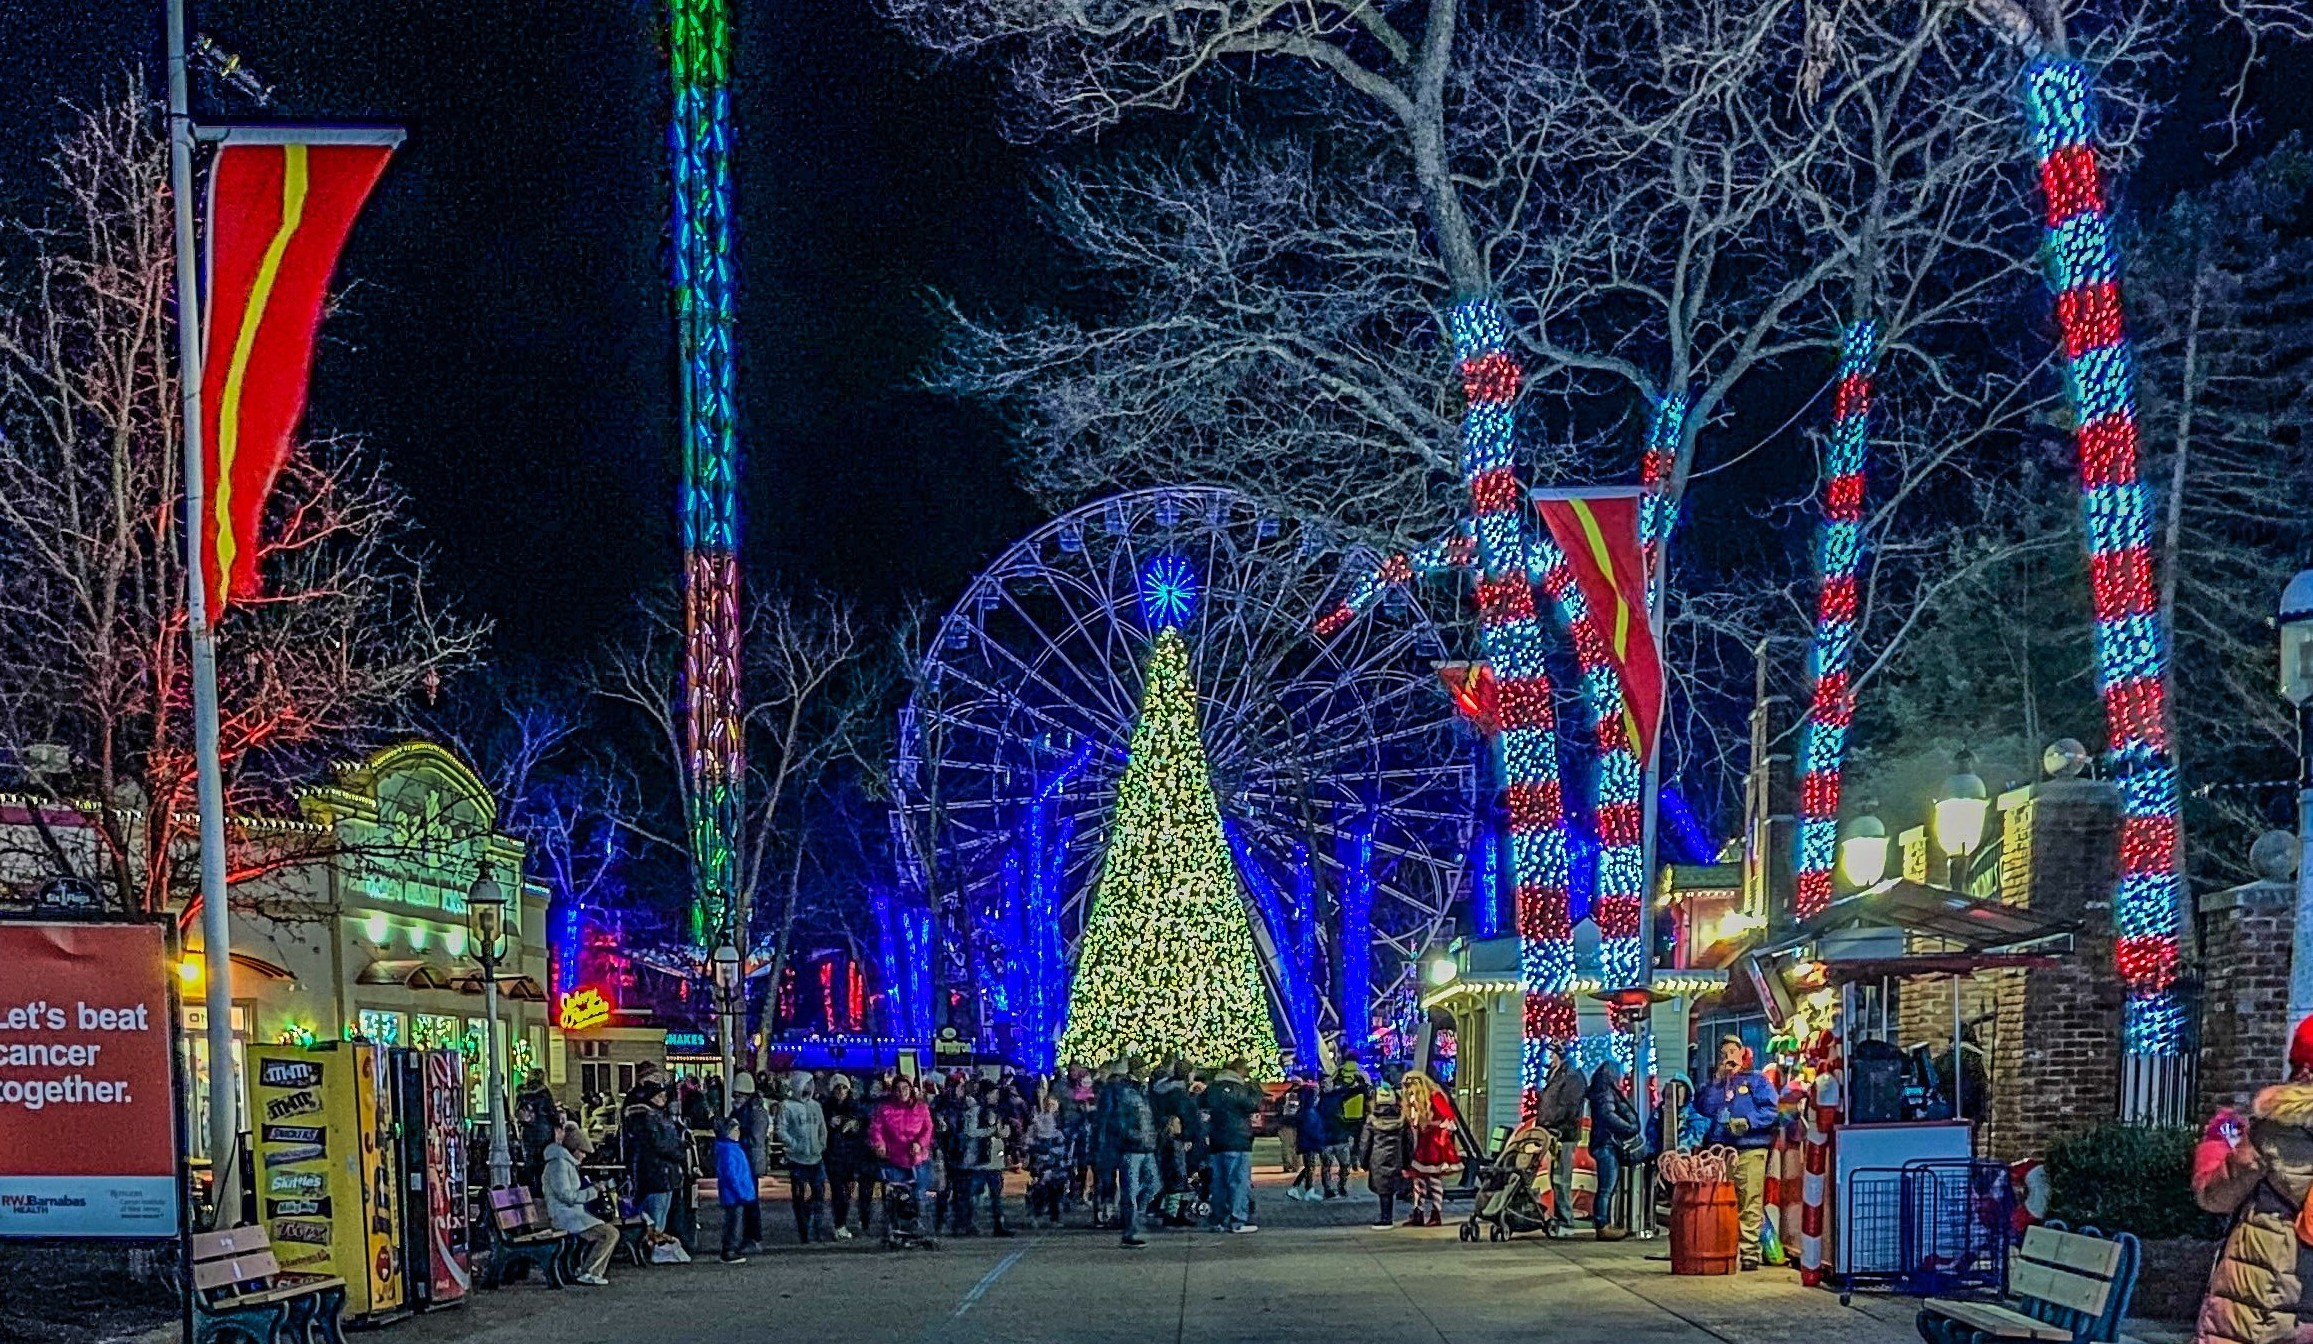 Six Flags' Holiday in the Park Winter Festival will debut brand-new attractions